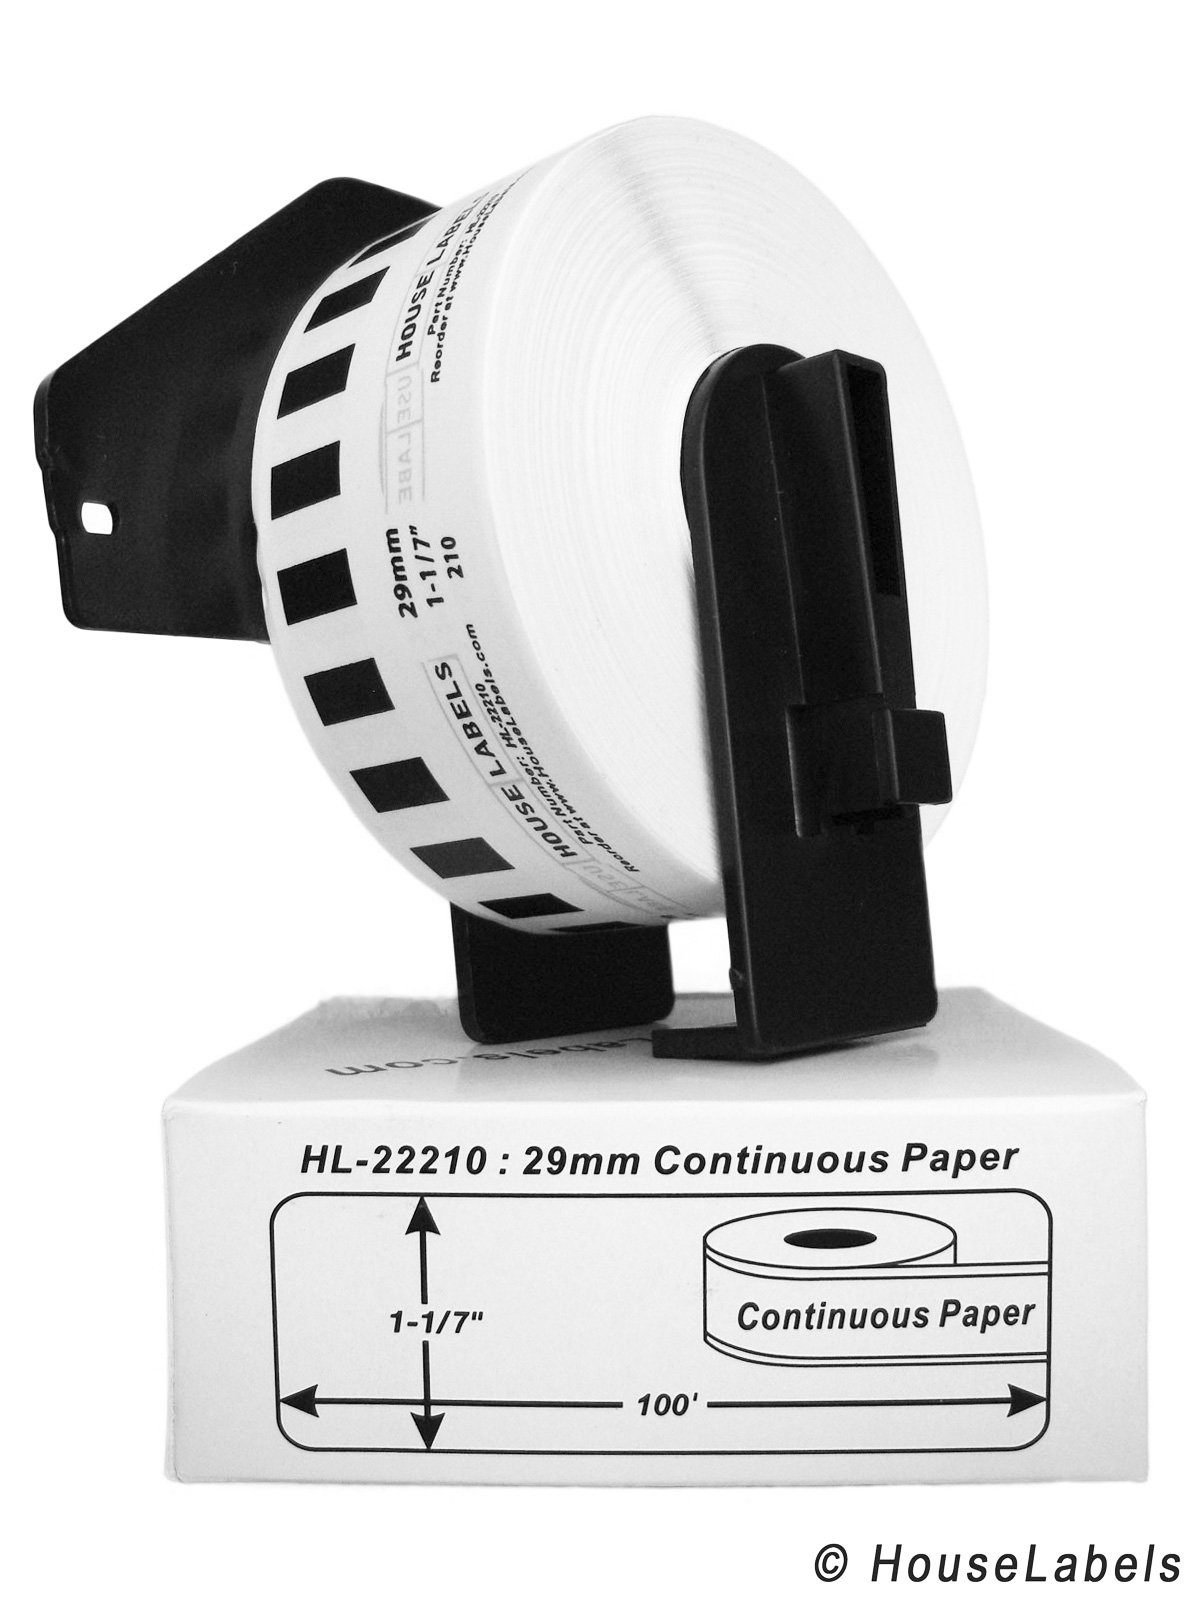 24 Rolls; Continuous Paper, BROTHER-Compatible DK-2210 Continuous Paper Labels with ONE (1) reusable cartridge (1-1/7'' x 100'; 29mm30.48m) -- BPA Free!